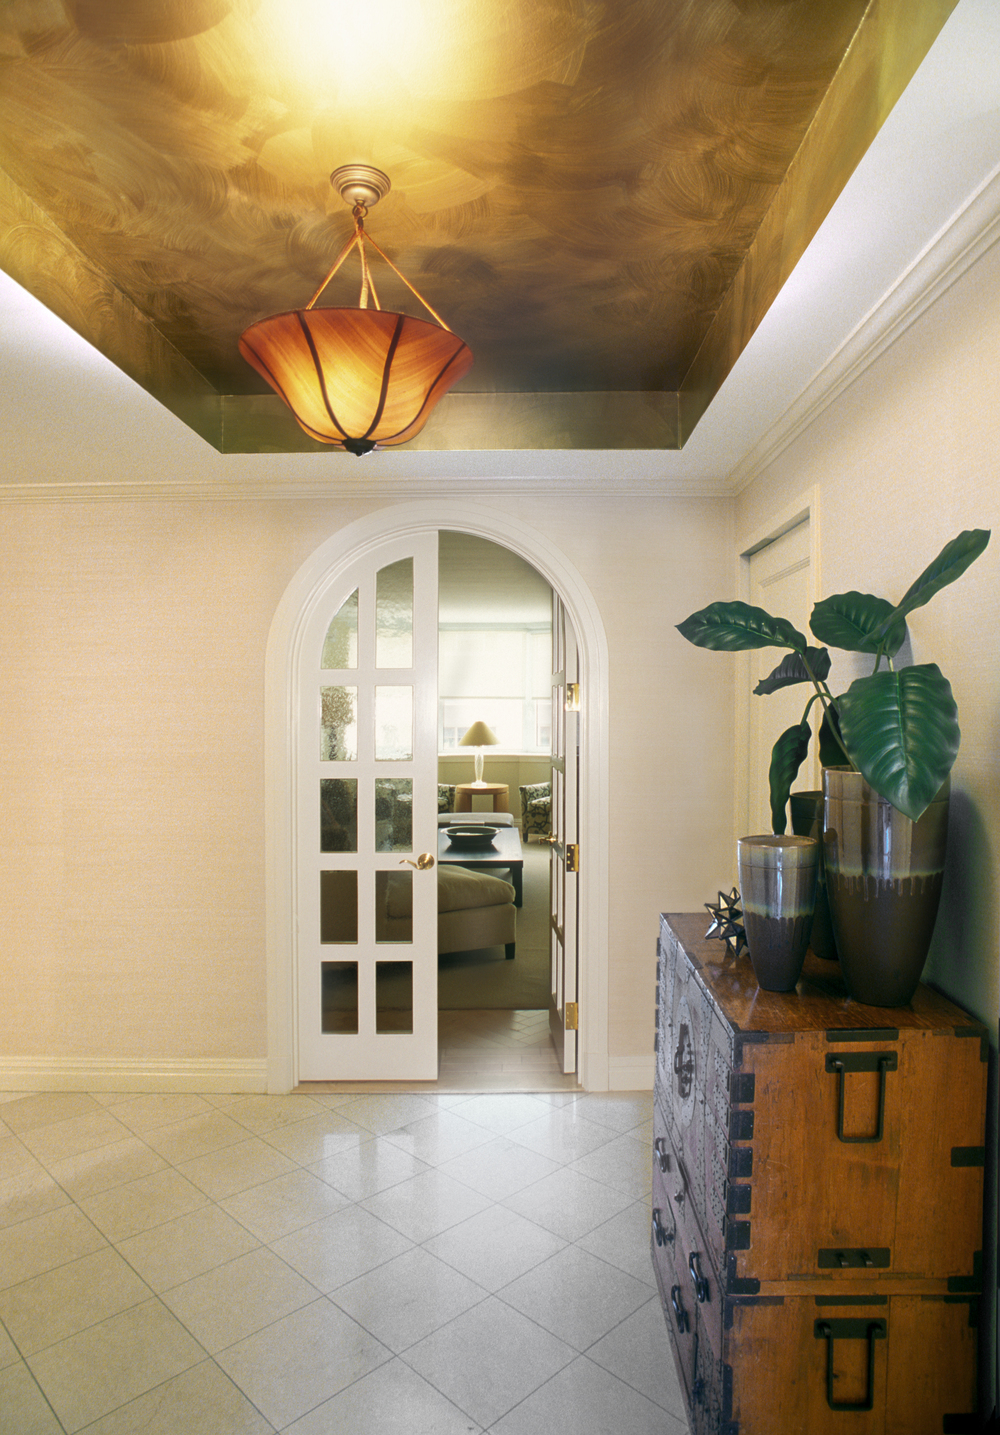 Private Residence. Tobin Parnes Design. Residential. Entry Foyer.